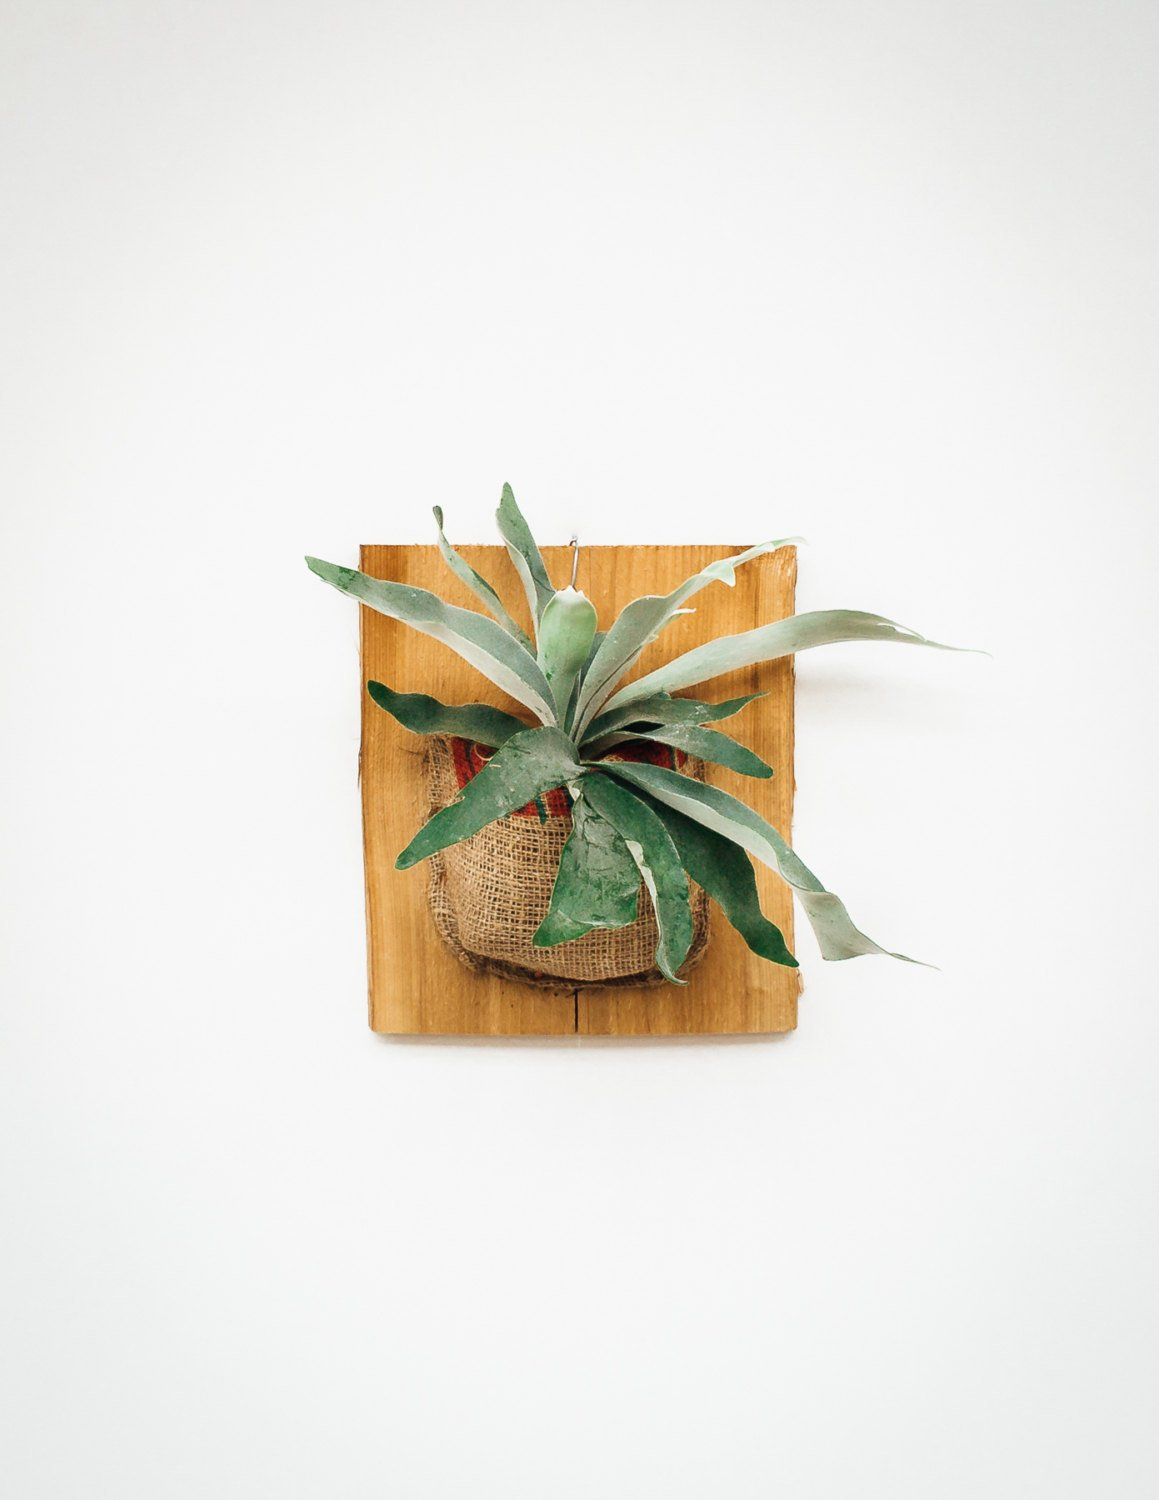 Real Staghorn Fern plant, mounted on wooden plaque